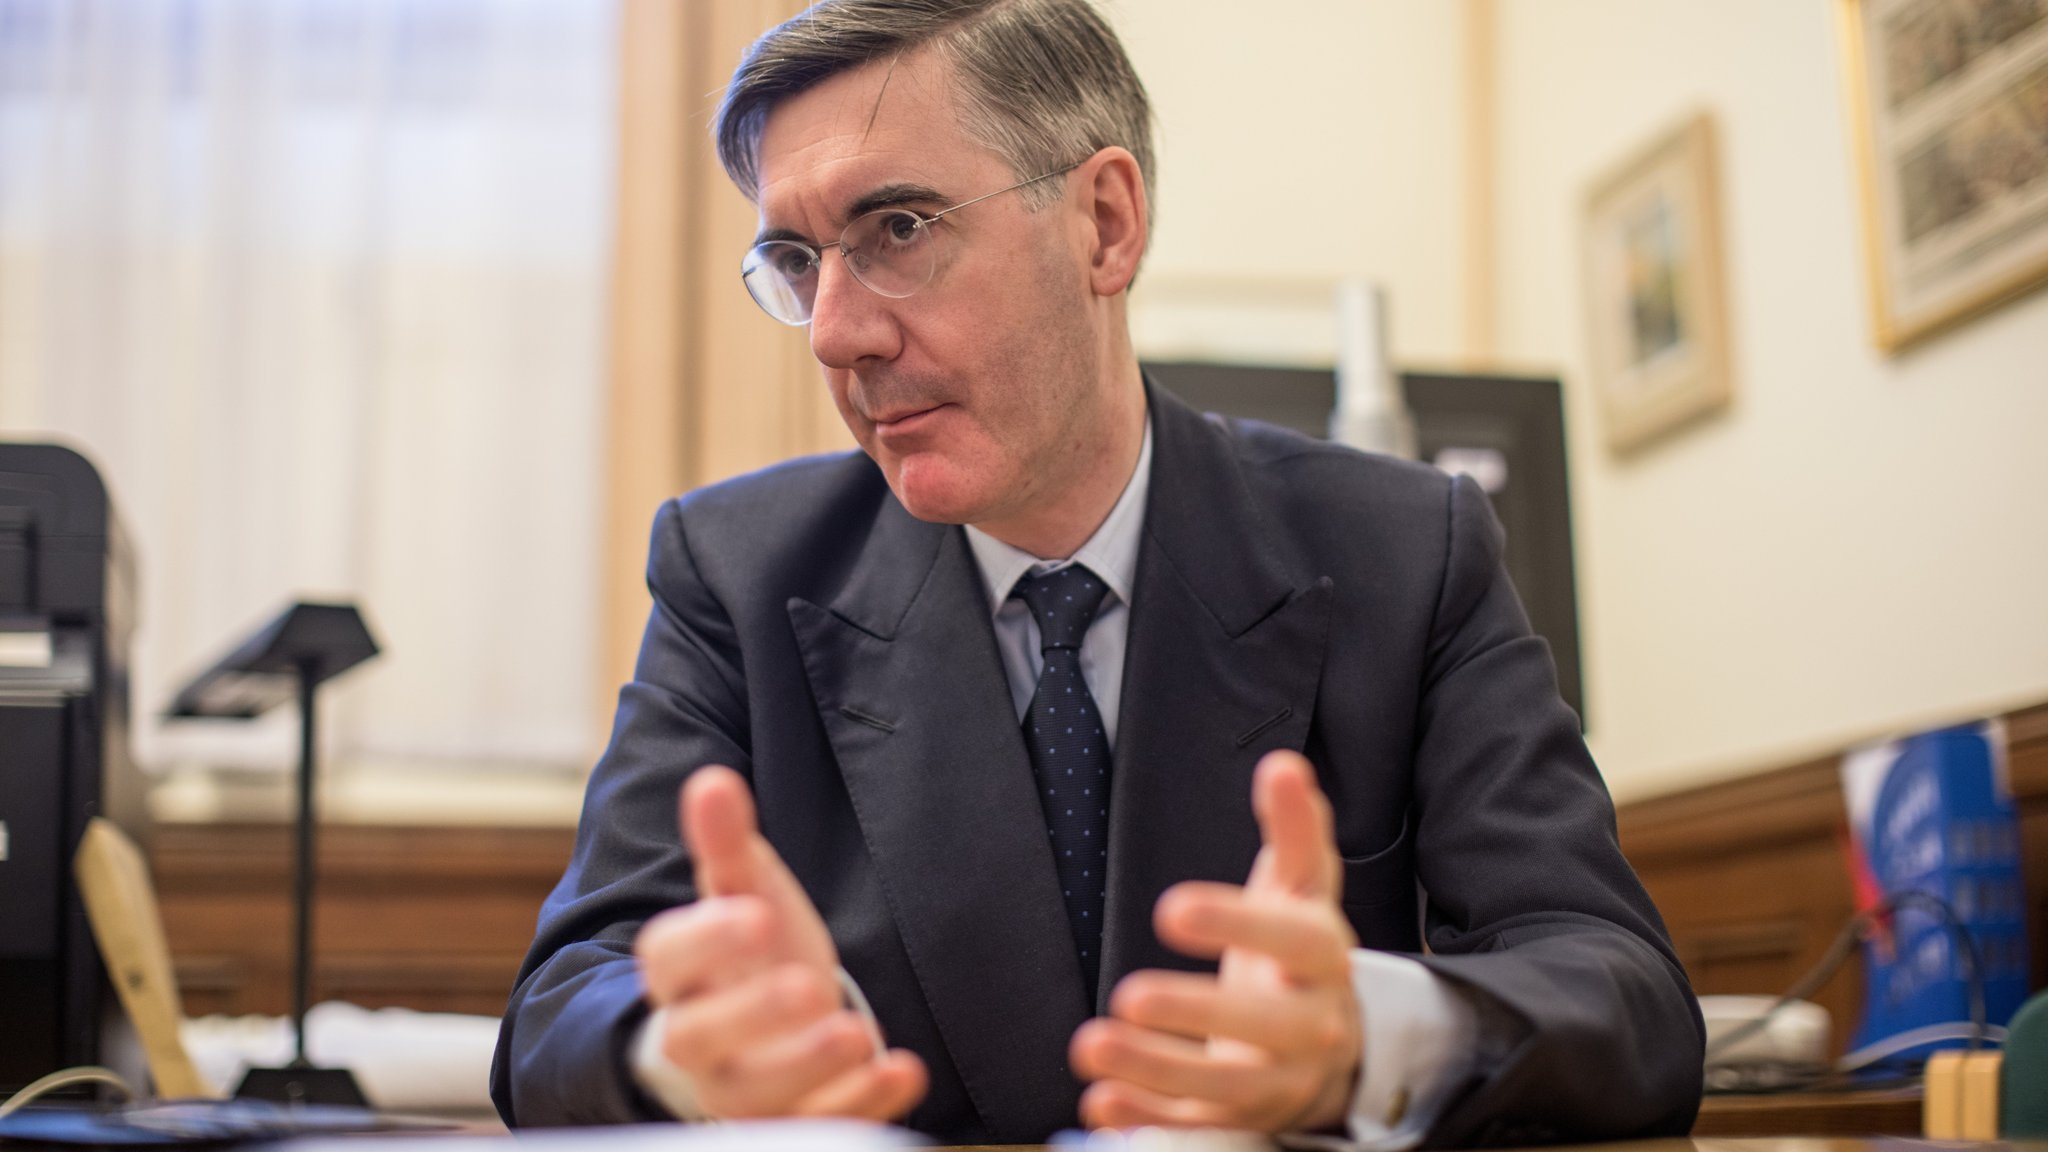 Jacob Rees-Mogg urges Brexit hardliners to compromise